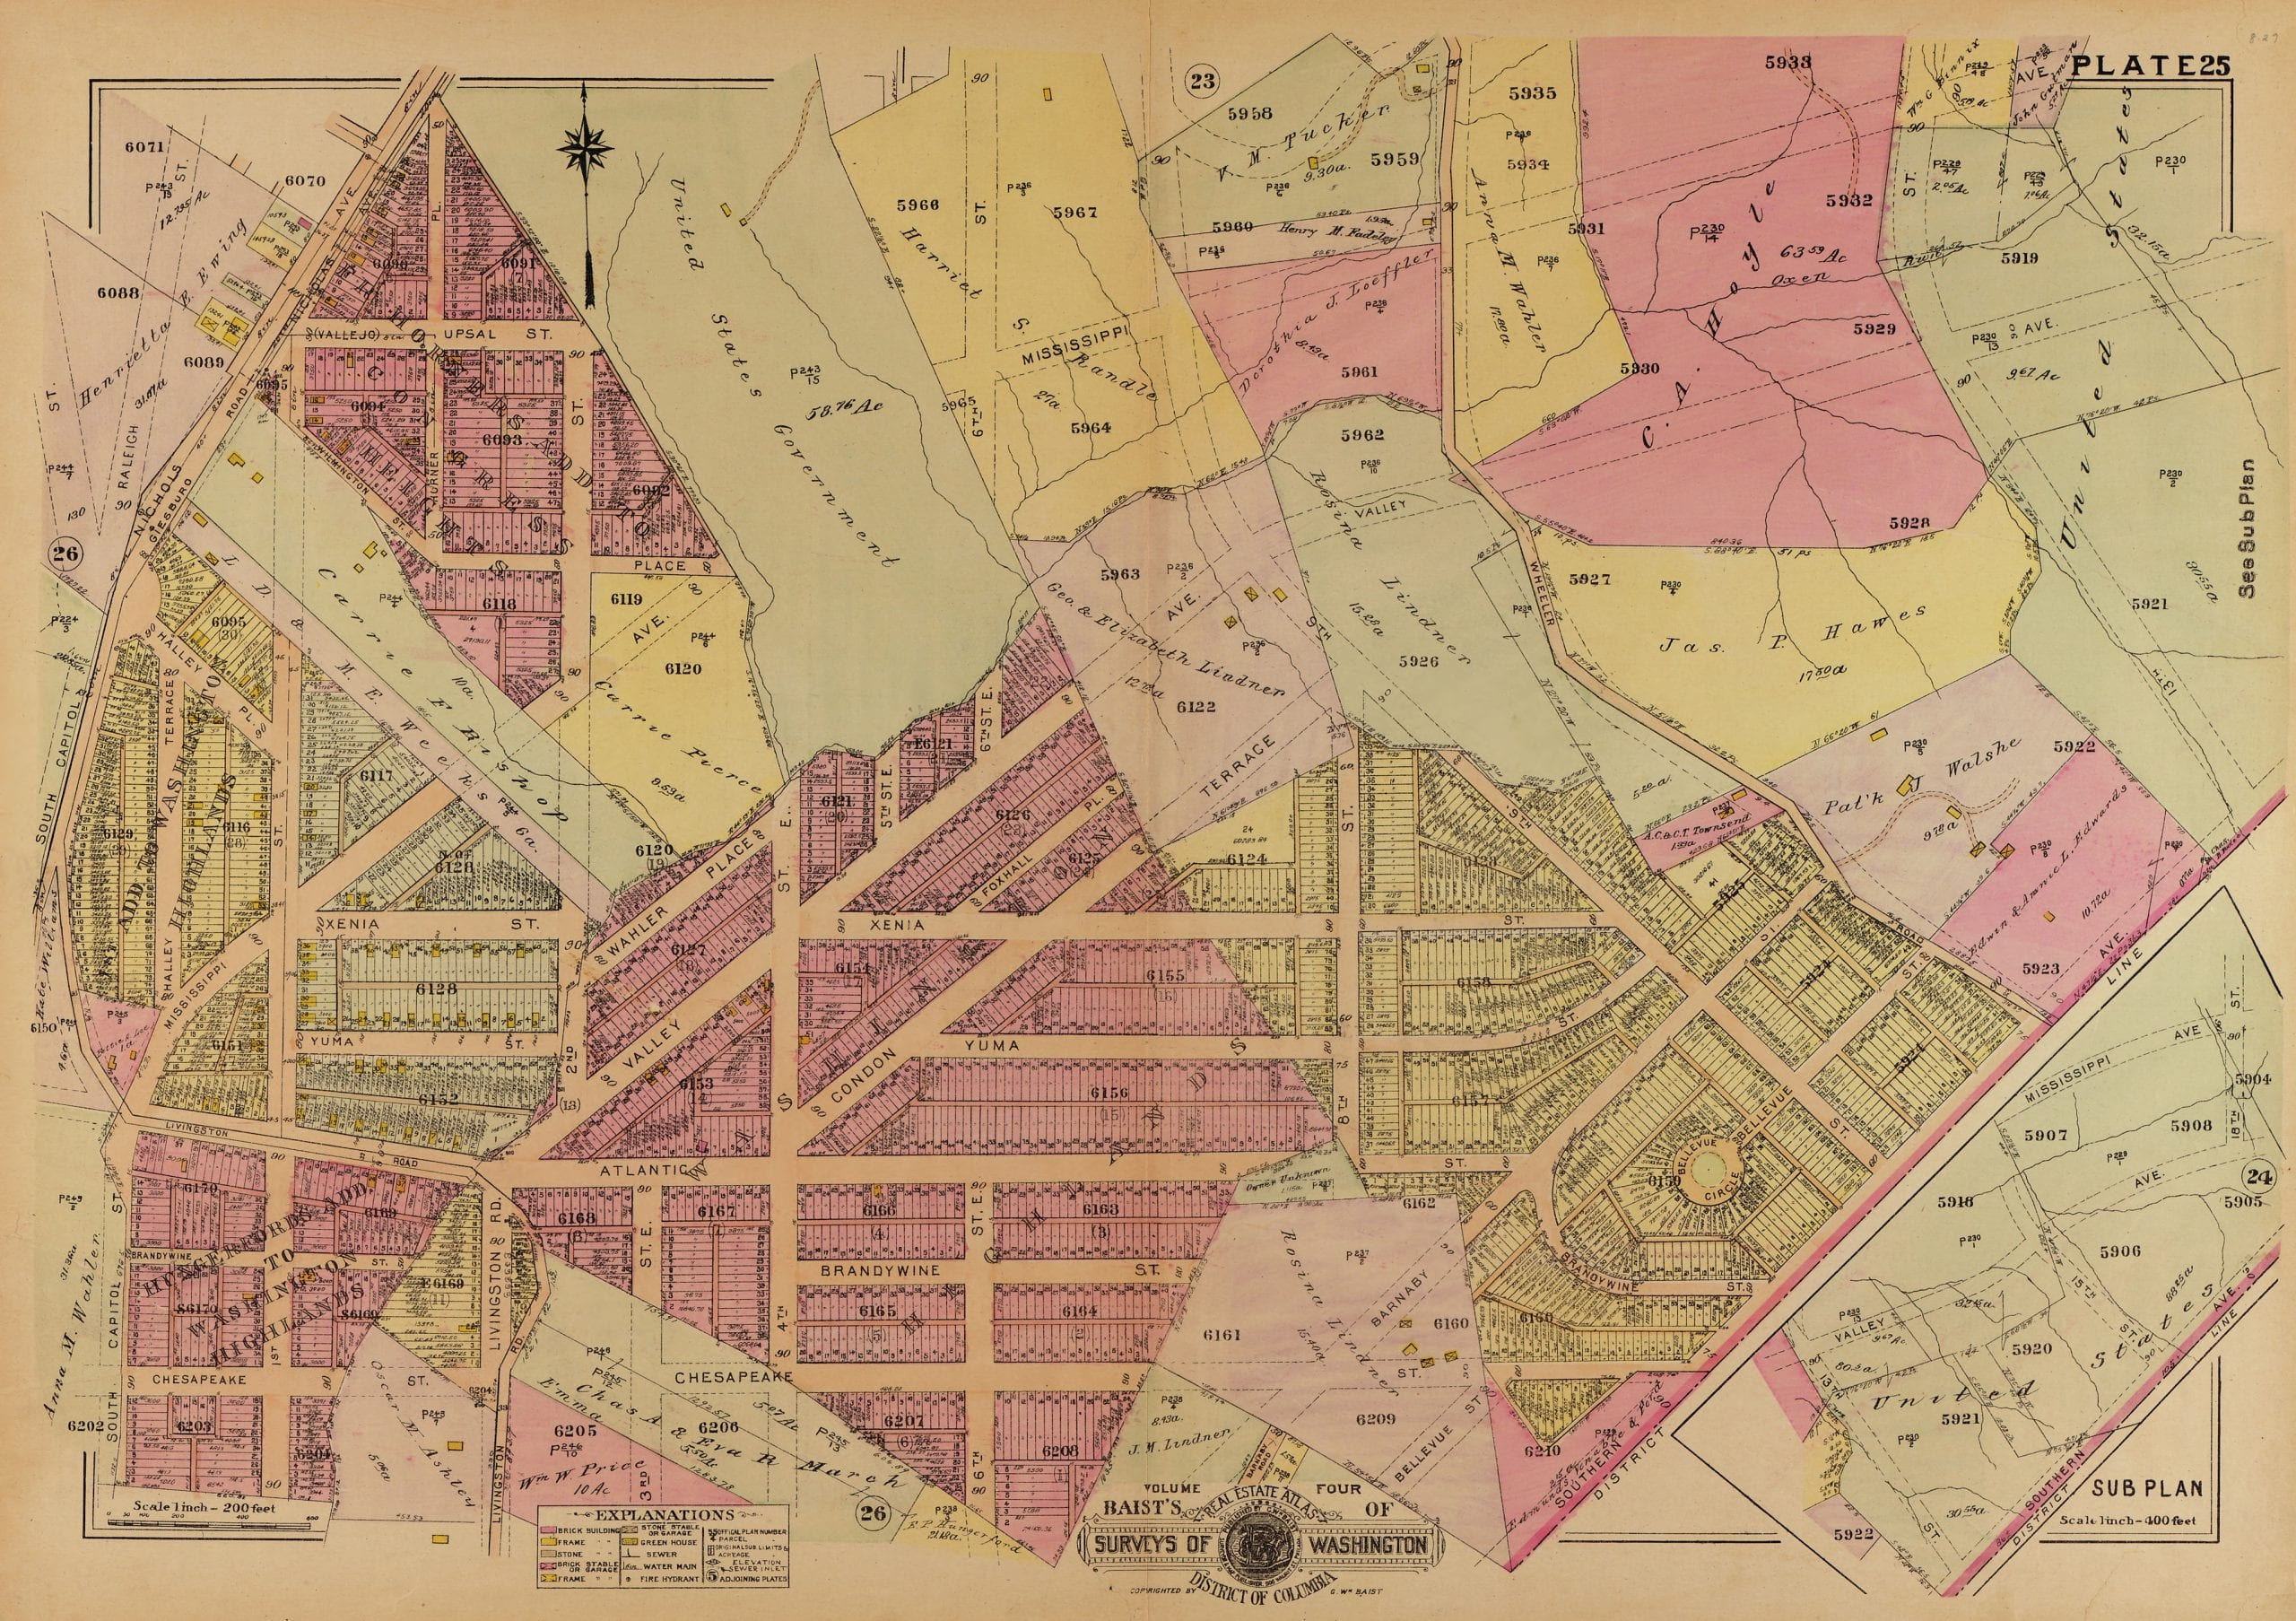 1921 Baist real estate atlas of southeast D.C.